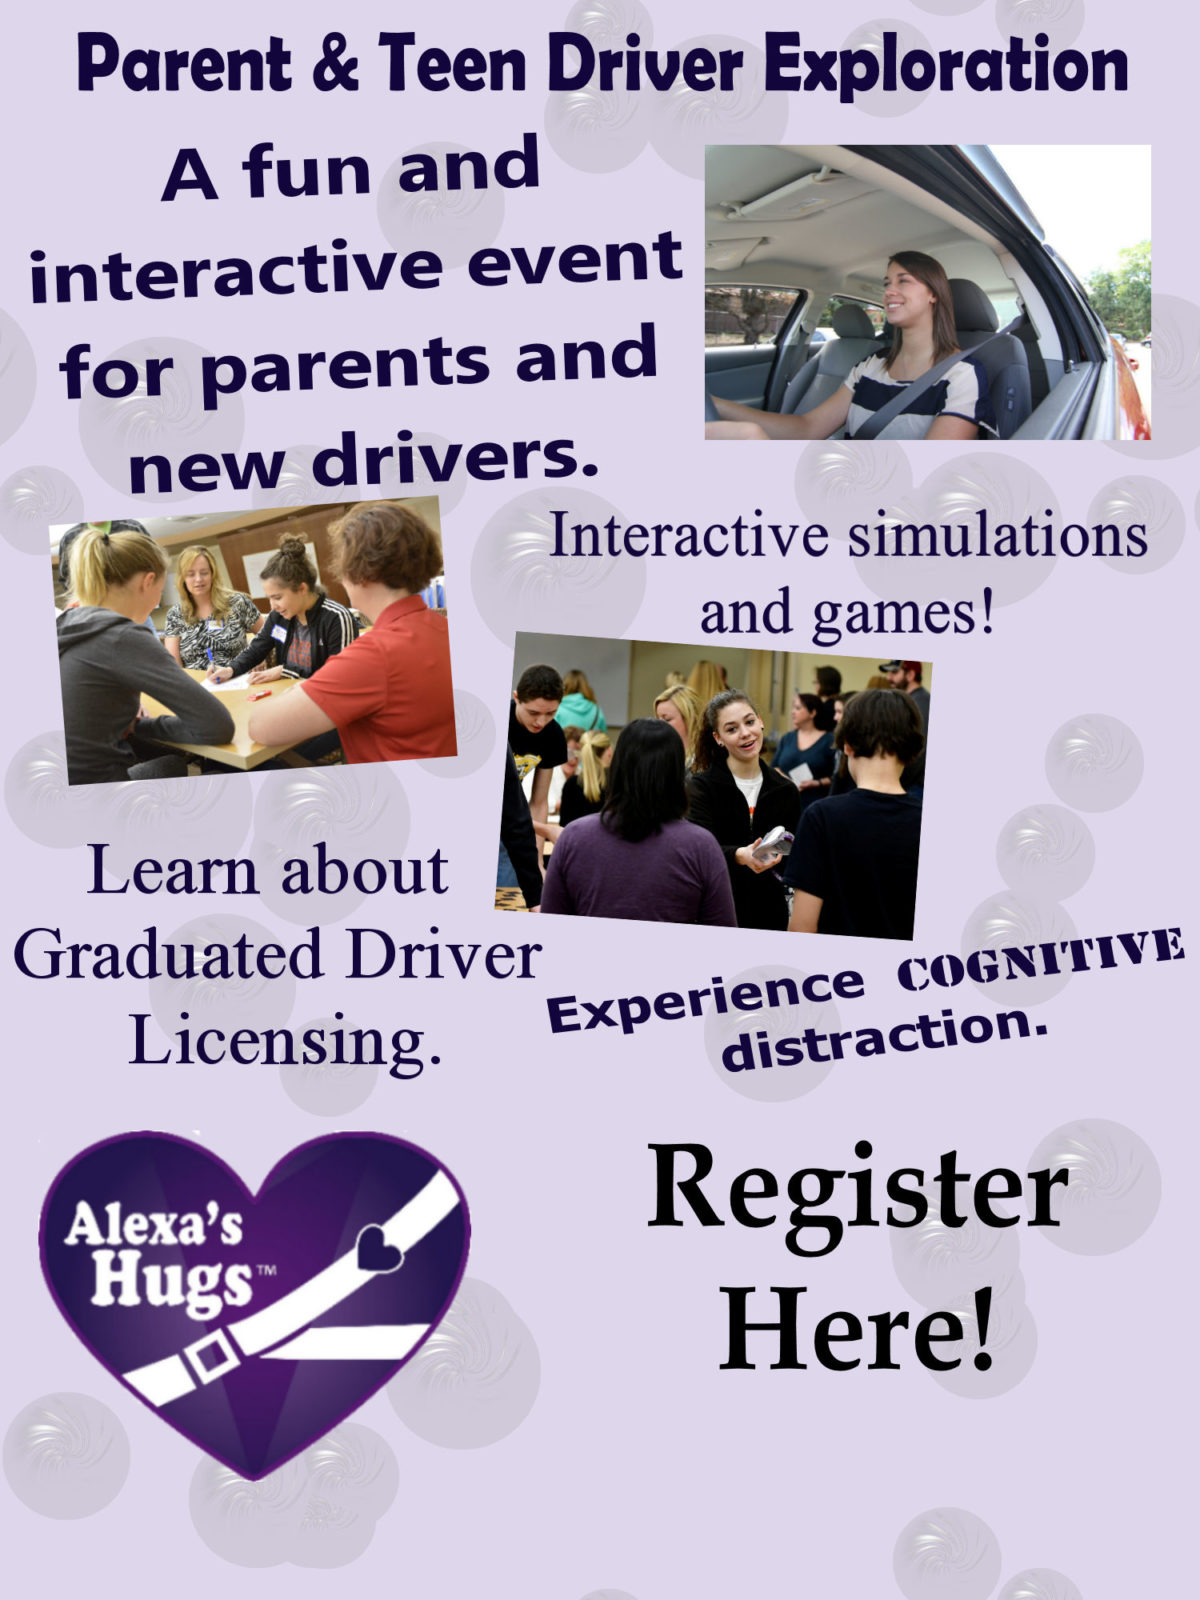 Register for teen driving events